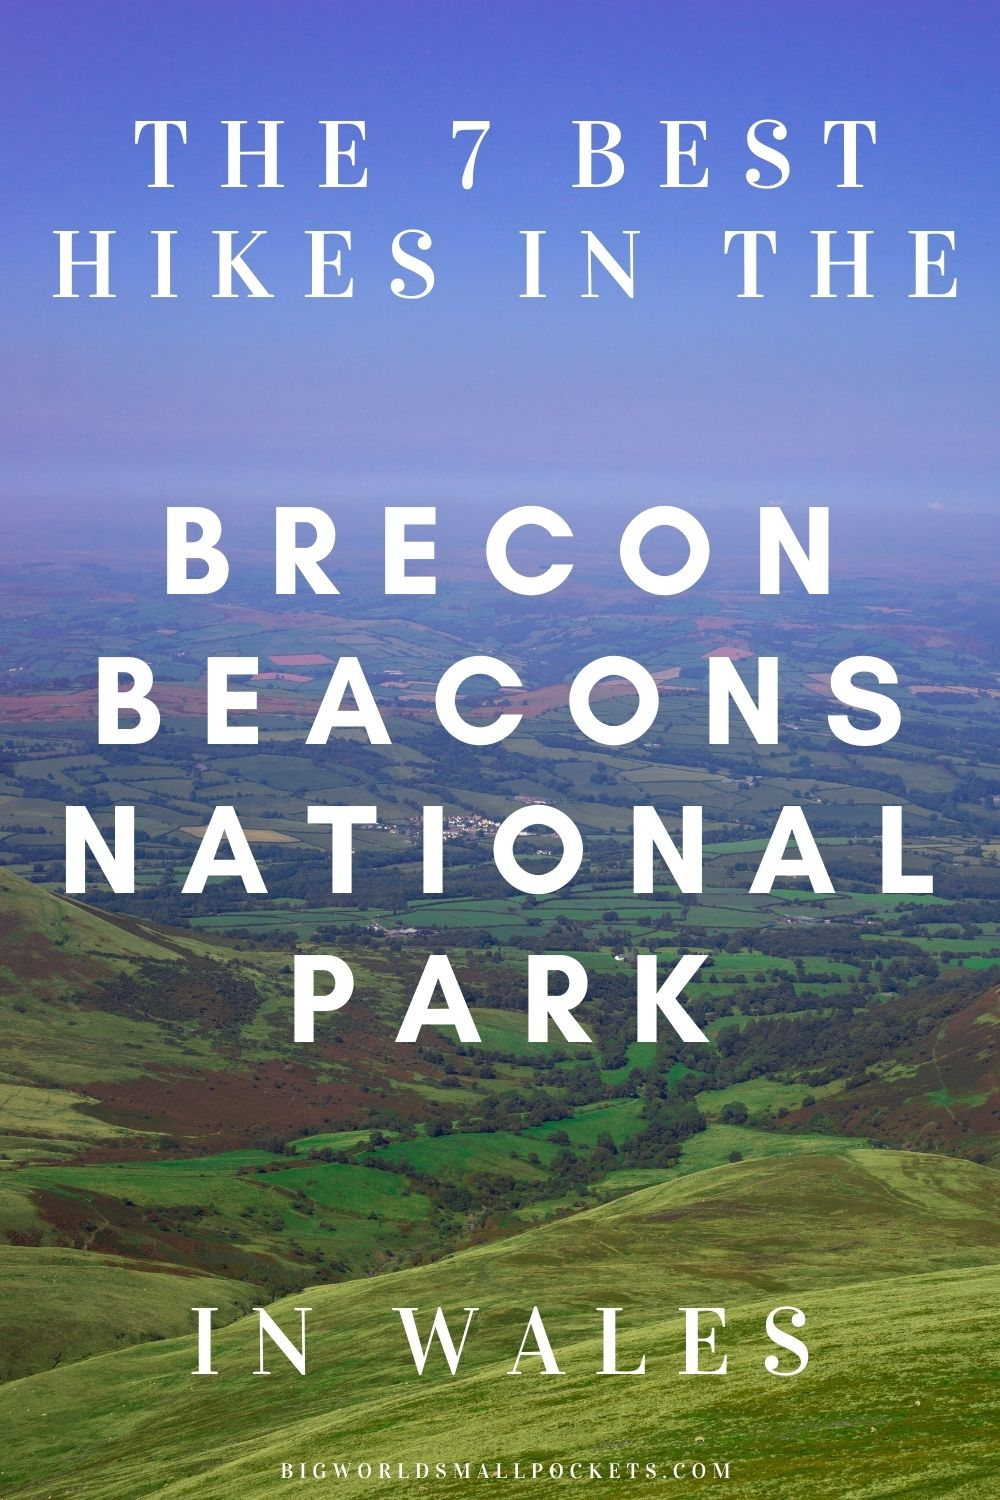 Top 7 Hikes in the Brecon Beacons, Wales